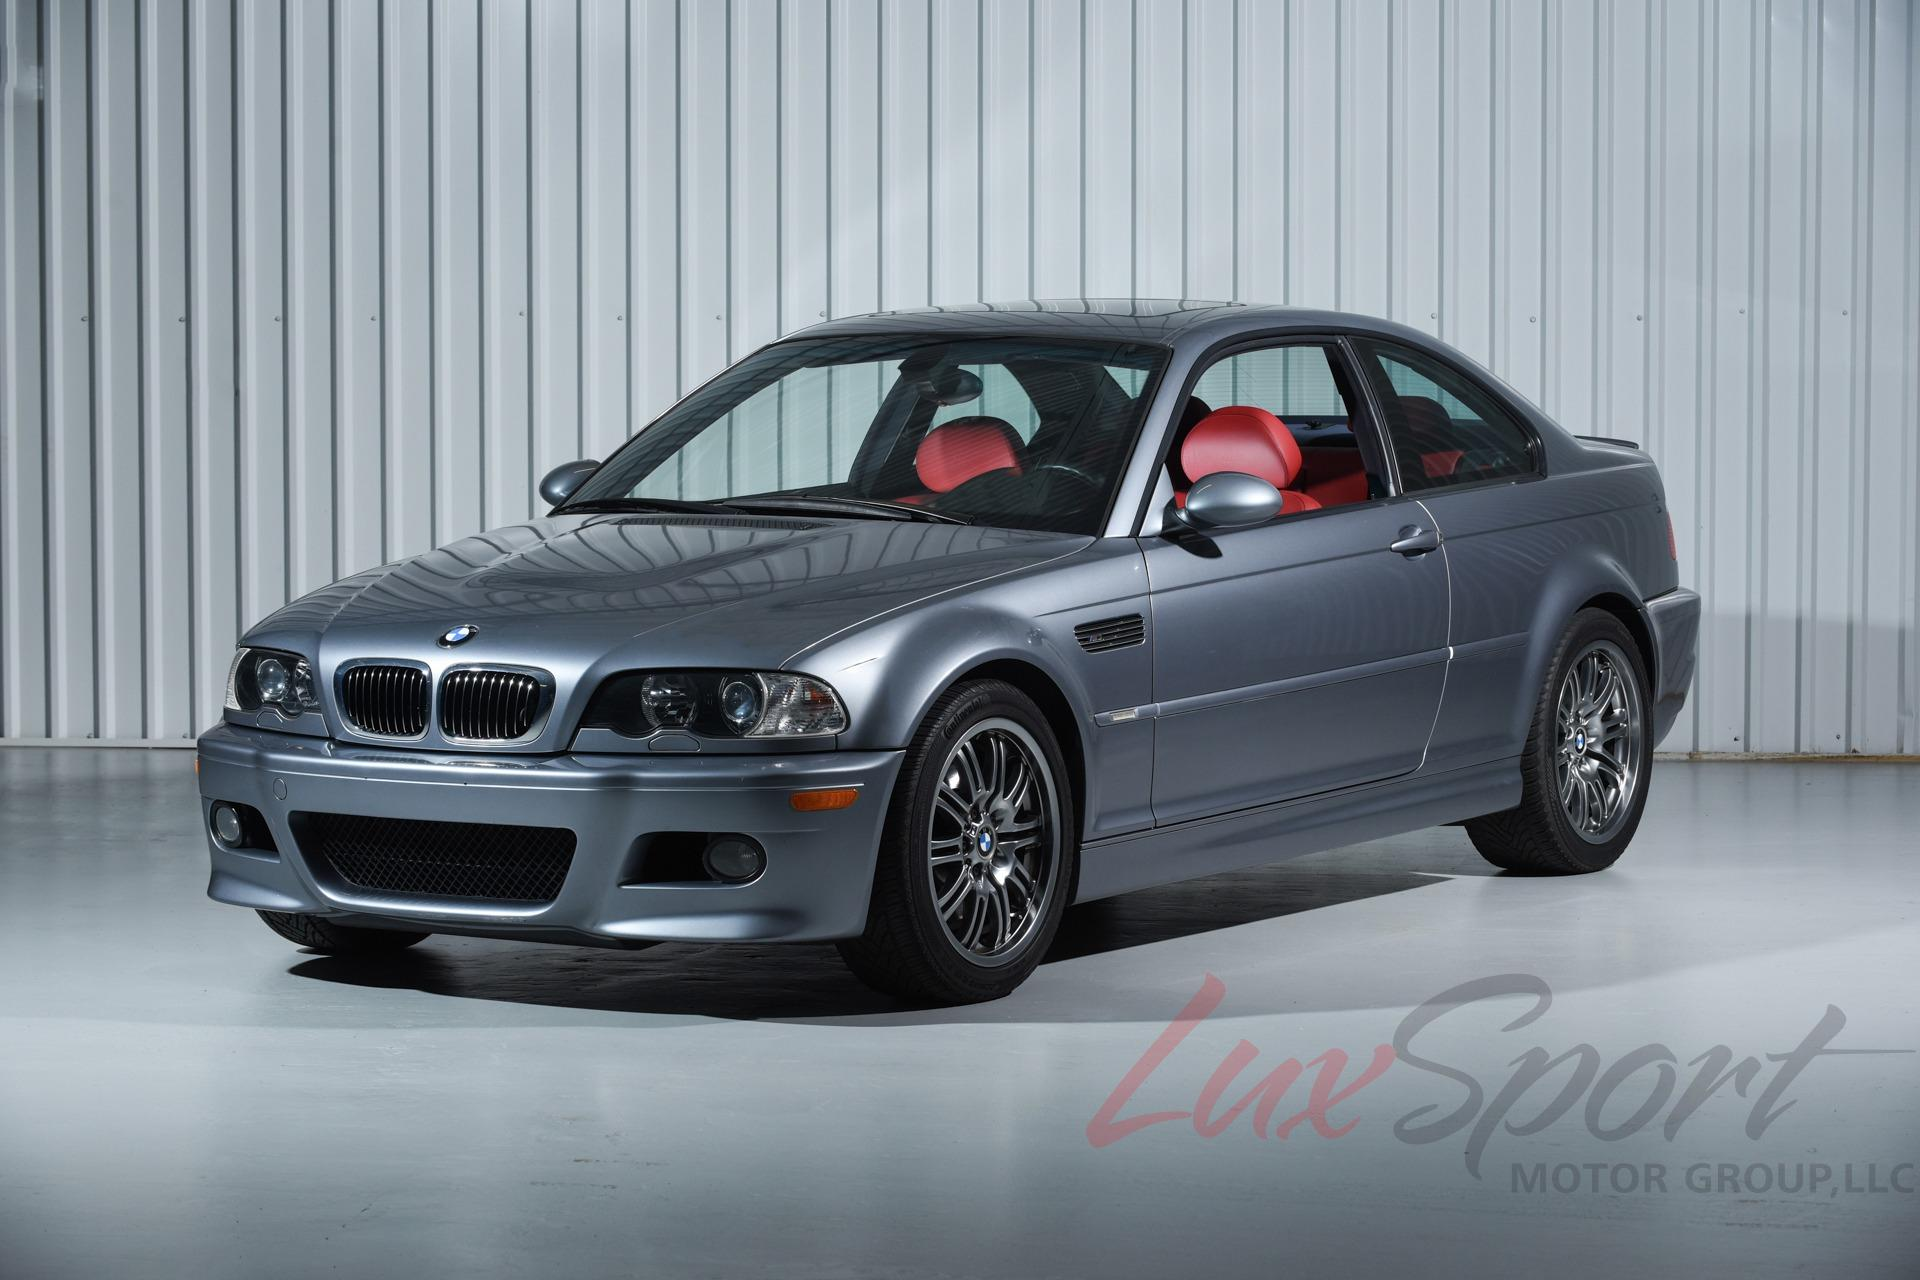 2003 bmw m3 coupe used bmw m3 coupe for sale in new hyde park new york. Black Bedroom Furniture Sets. Home Design Ideas